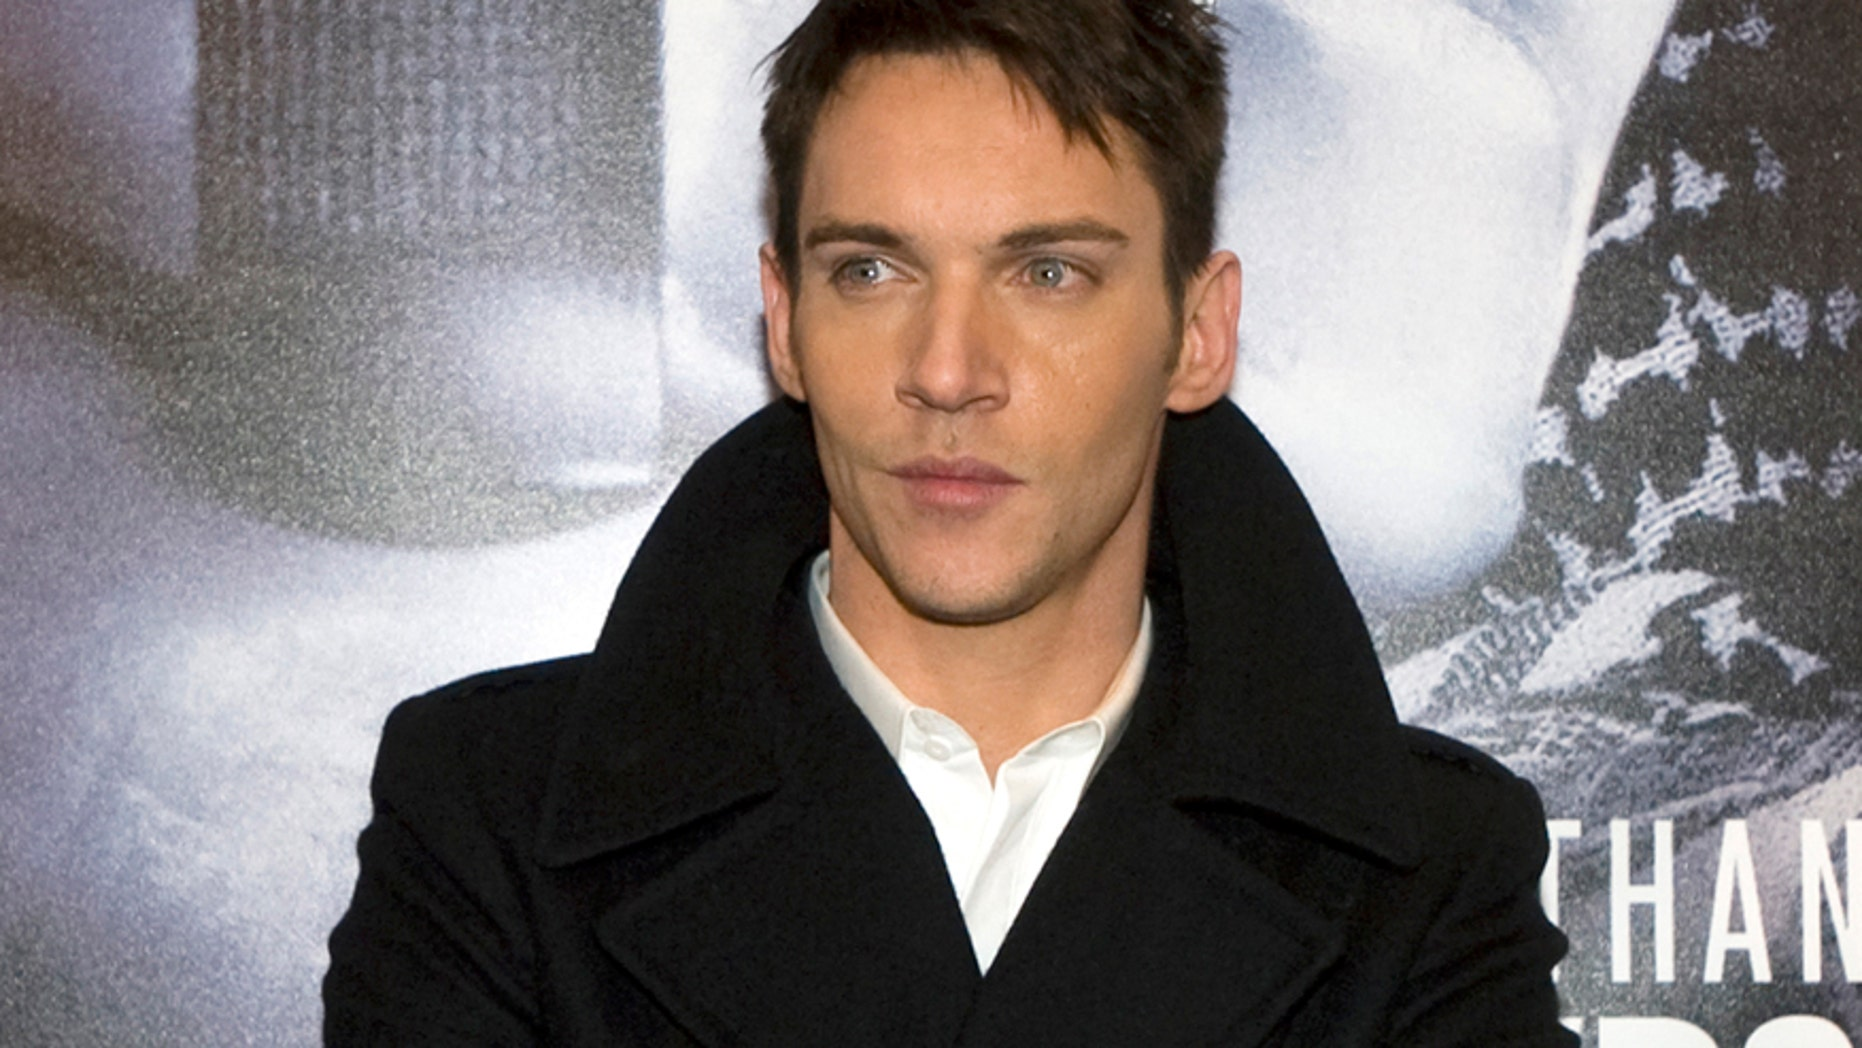 """Actor Jonathan Rhys Meyers arrives at the premiere of """"From Paris With Love"""" in Paris February 11, 2010. REUTERS"""